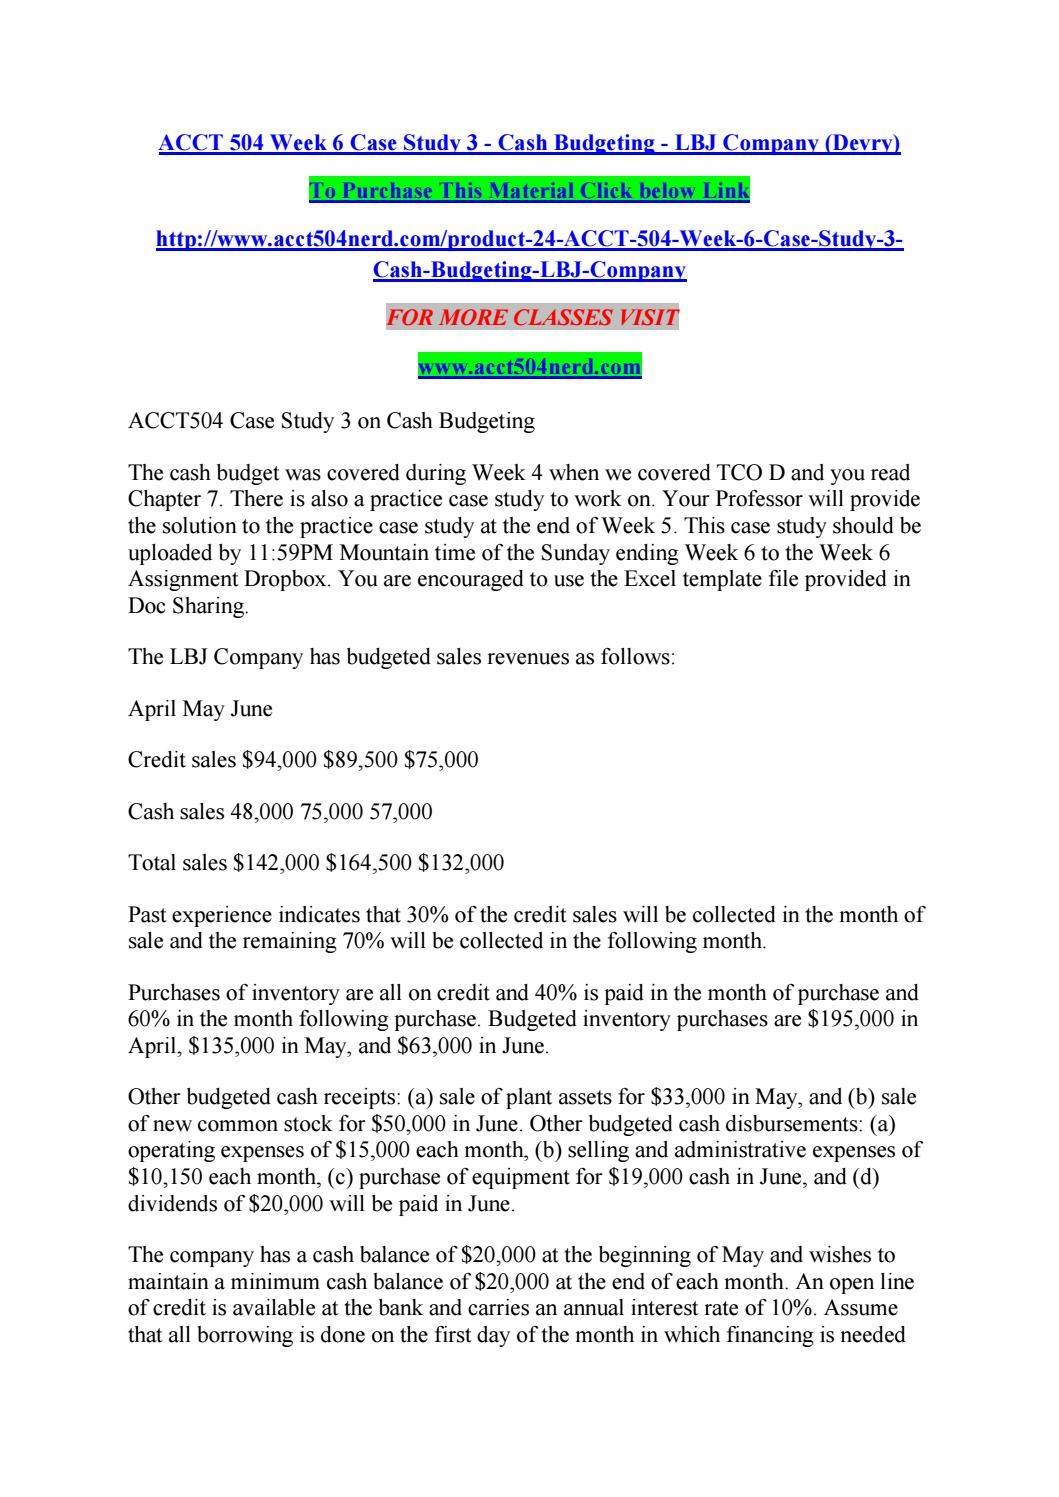 504 case study 3 cash budget template lbj Acct 504 week 6 case study 3 - cash budgeting - lbj company the cash budget was covered during week 4 when we covered tco d and you read chapter 7.